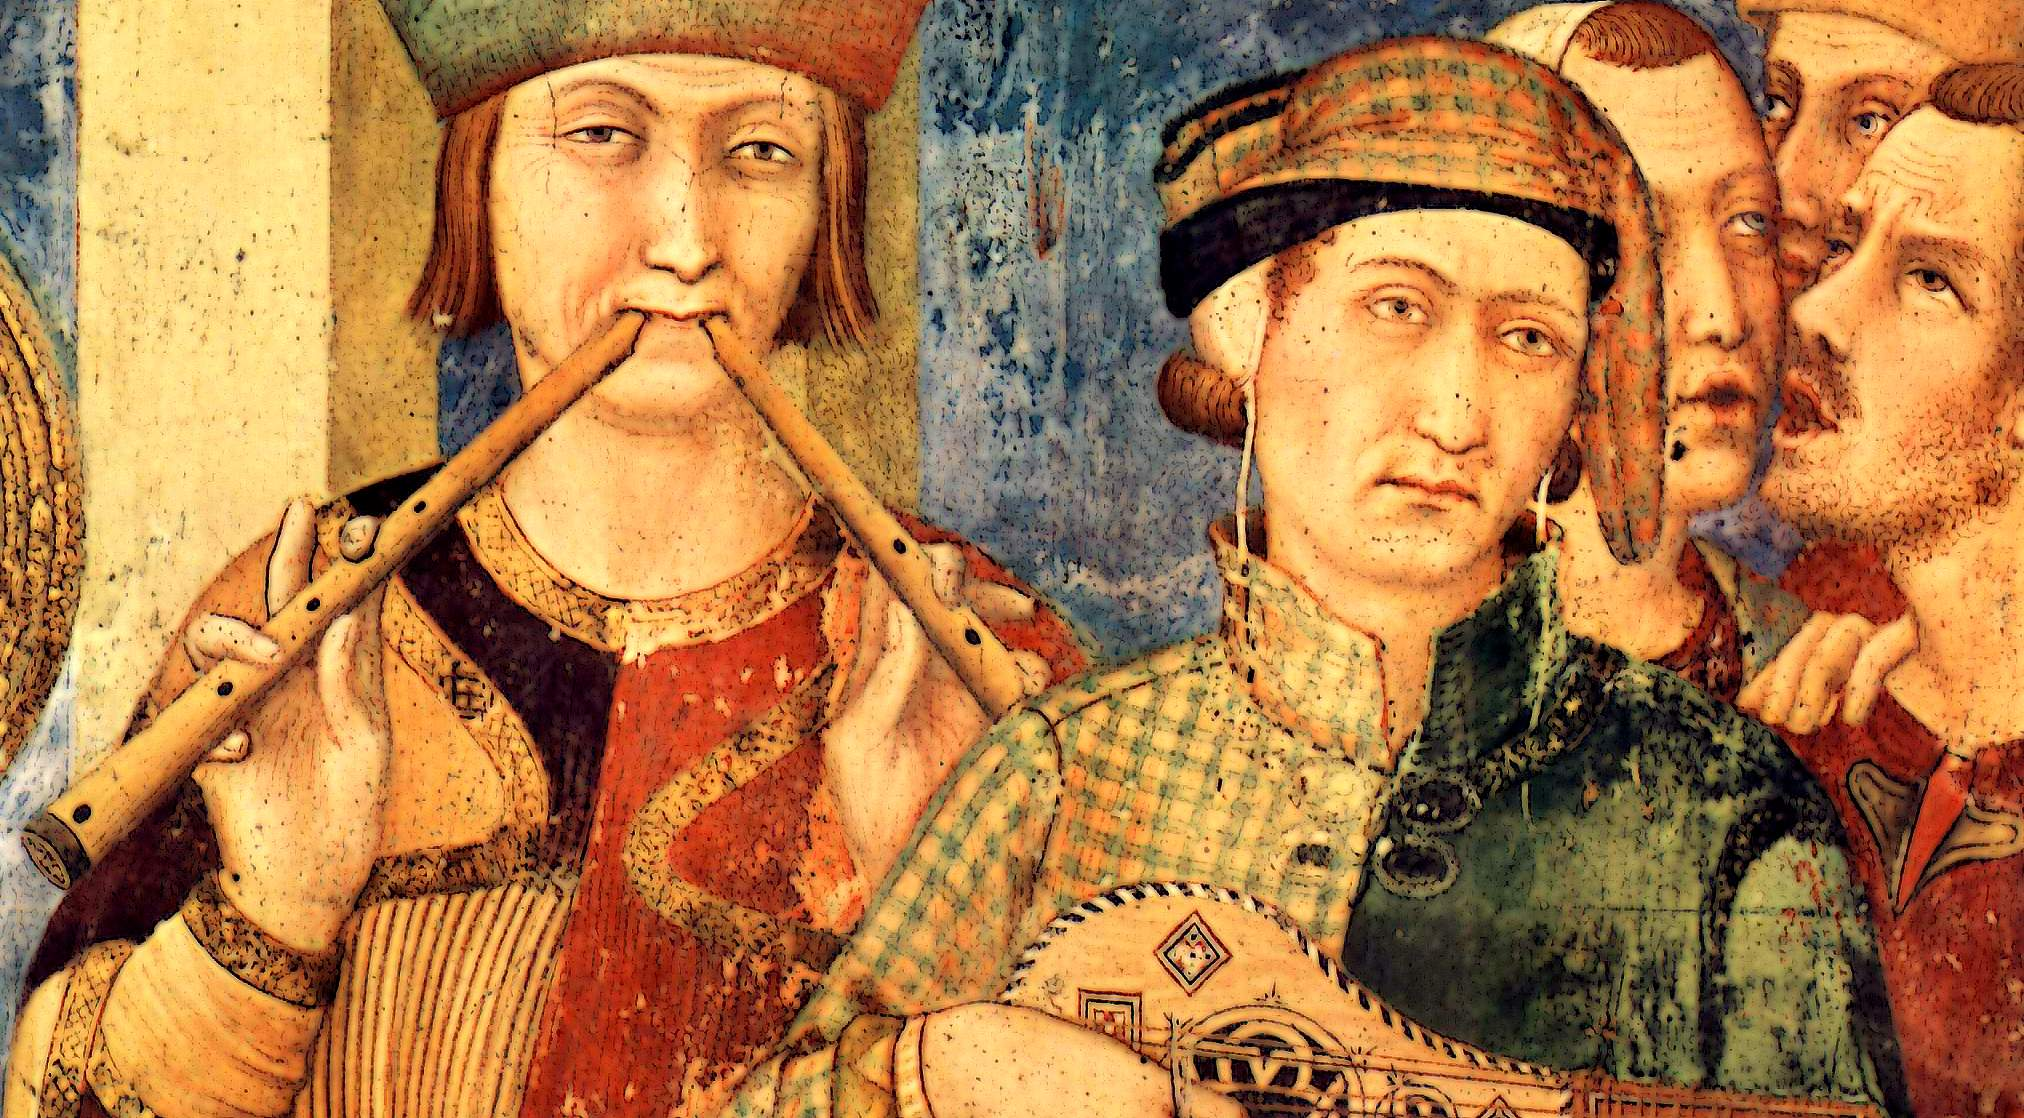 essays in italian poetry and music in the renaissance Get an answer for 'what are four characteristics of the renaissance' and find homework help for other the renaissance questions at enotes the influence of the italian scholar petrarch what's the connection between poetry and renaissance literature.